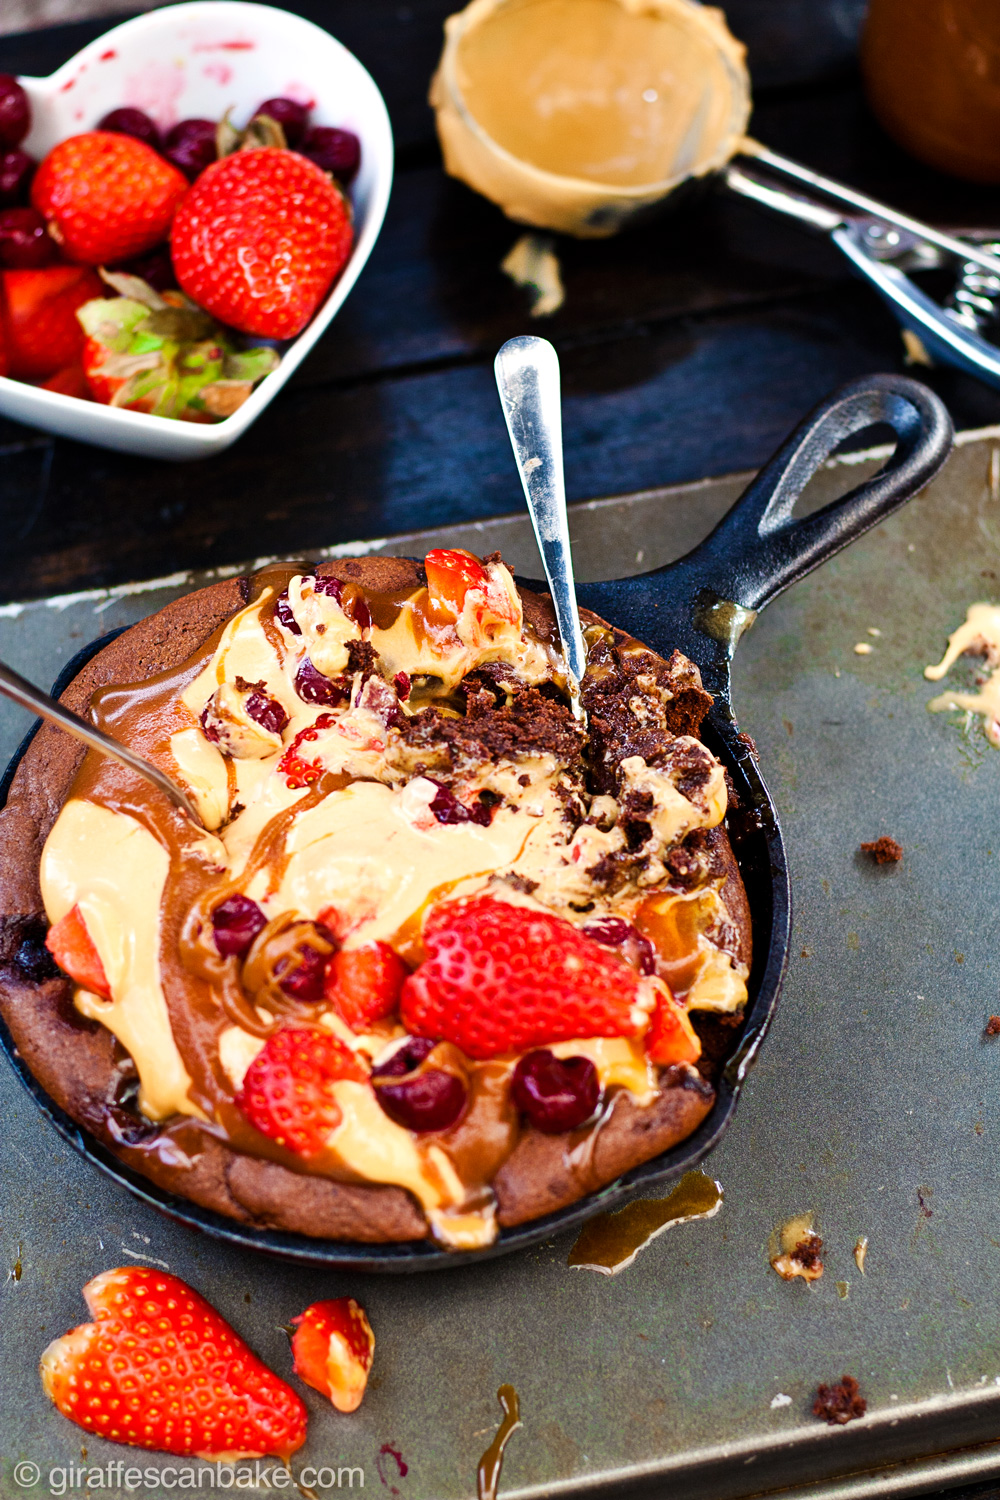 Brownie Sundae for Two - The most delicious way to wow your Valentine this year! This Gluten Free Skillet Brownie Sundae is made especially for two to share (loving gazes across the sundae are optional). Amaretto soaked cherries are baked into a fudgy, chocolate skillet brownie, which is then topped with an easy, no-churn salted caramel ice cream and amaretto caramel sauce. It's then finished off with delicious fresh berries for the most amazing brownie sundae you could ever want. And the best part? It's made right in your Vitamix blender and takes no time at all!